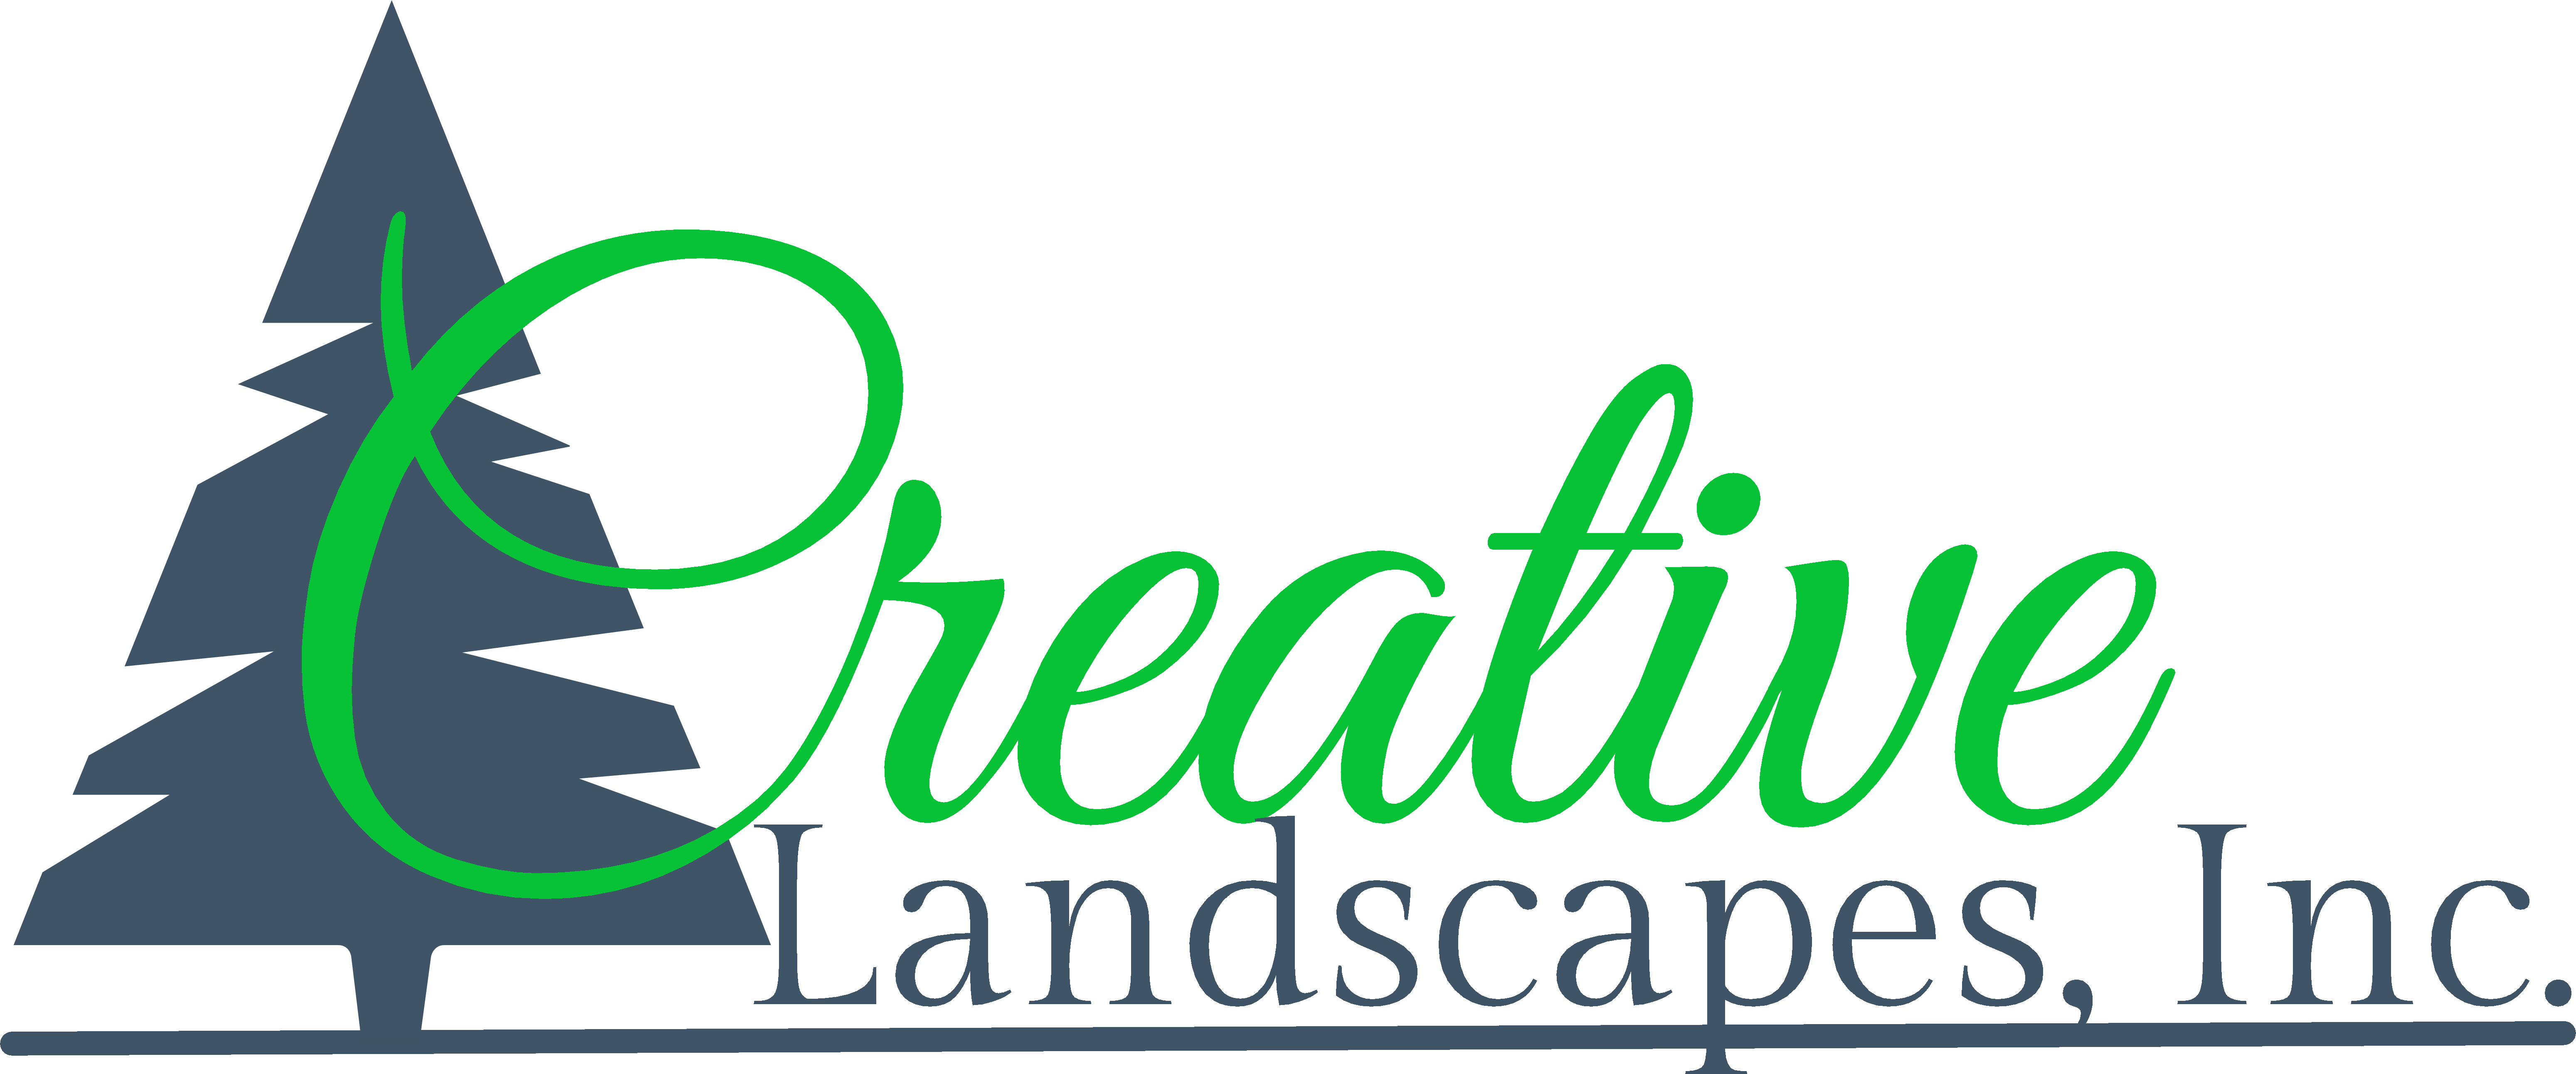 Creative Landscapes Inc.